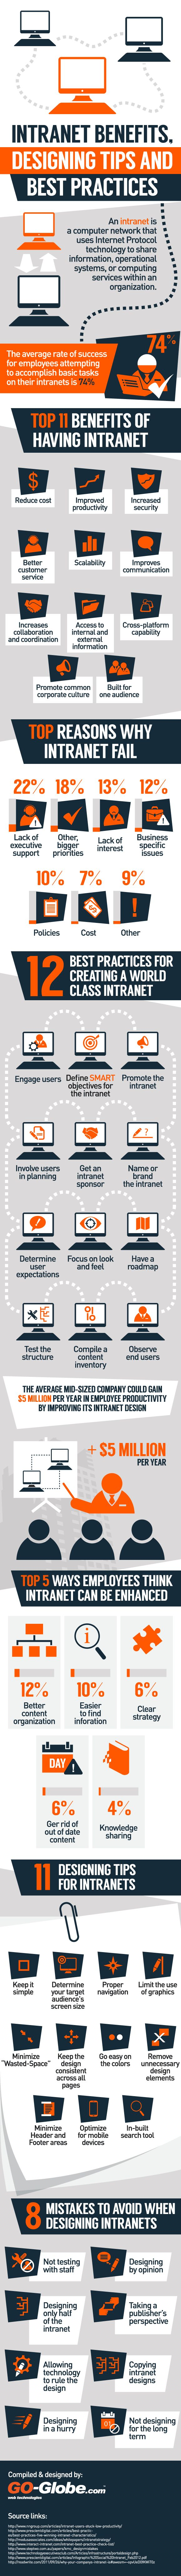 """Check out our infographic """"Intranet Benefits - Designing Tips and Best Practices """" to understand how Intranet can enhance the productivity of your employees and why having an Intranet is good for businesses."""